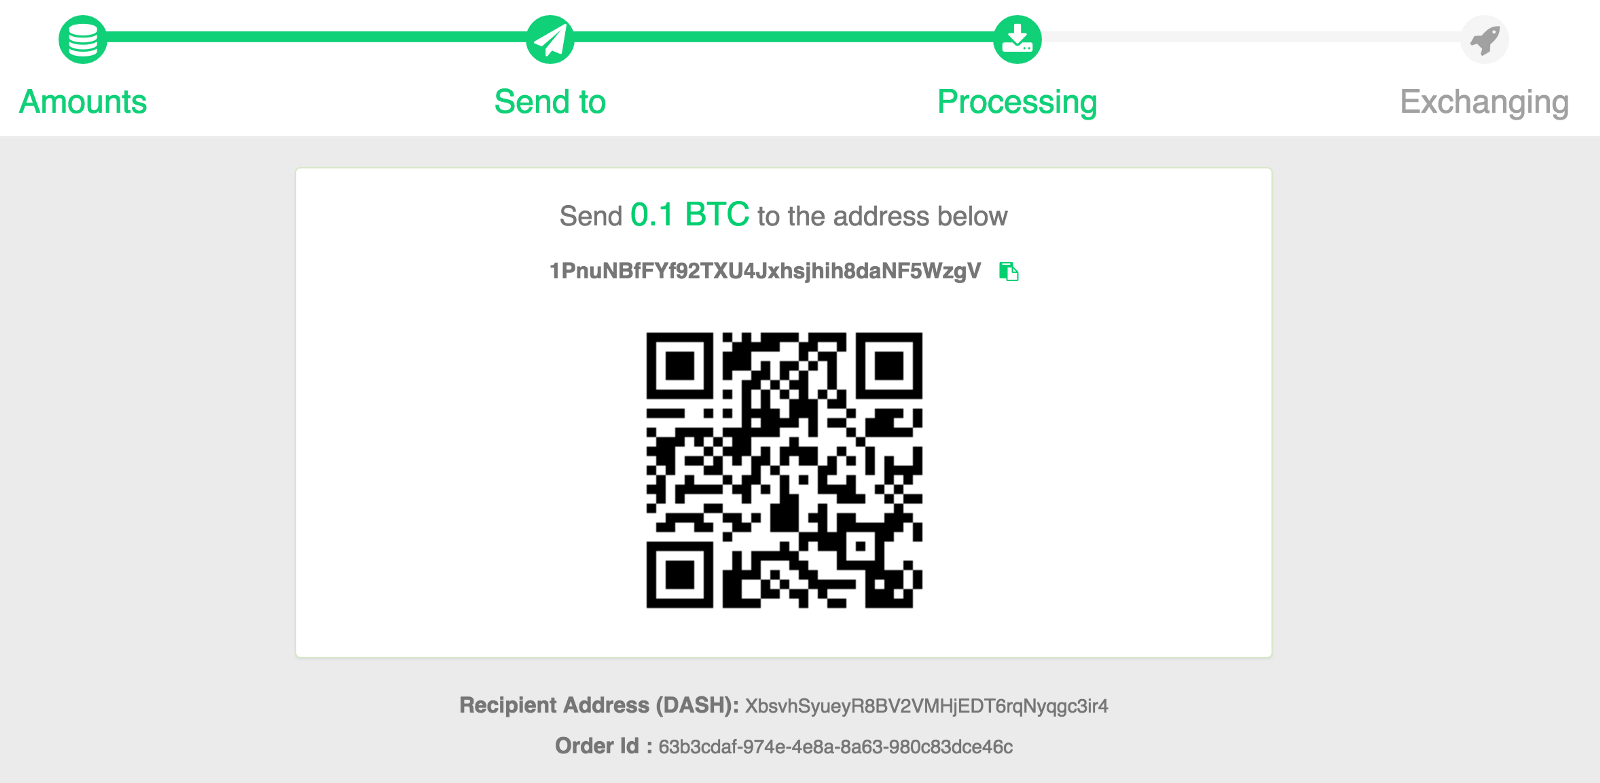 All the information you need on PotCoin (POT) in one place. Track its  current price, market cap, BTC to USD exchange rate, coins in circulation  and more.